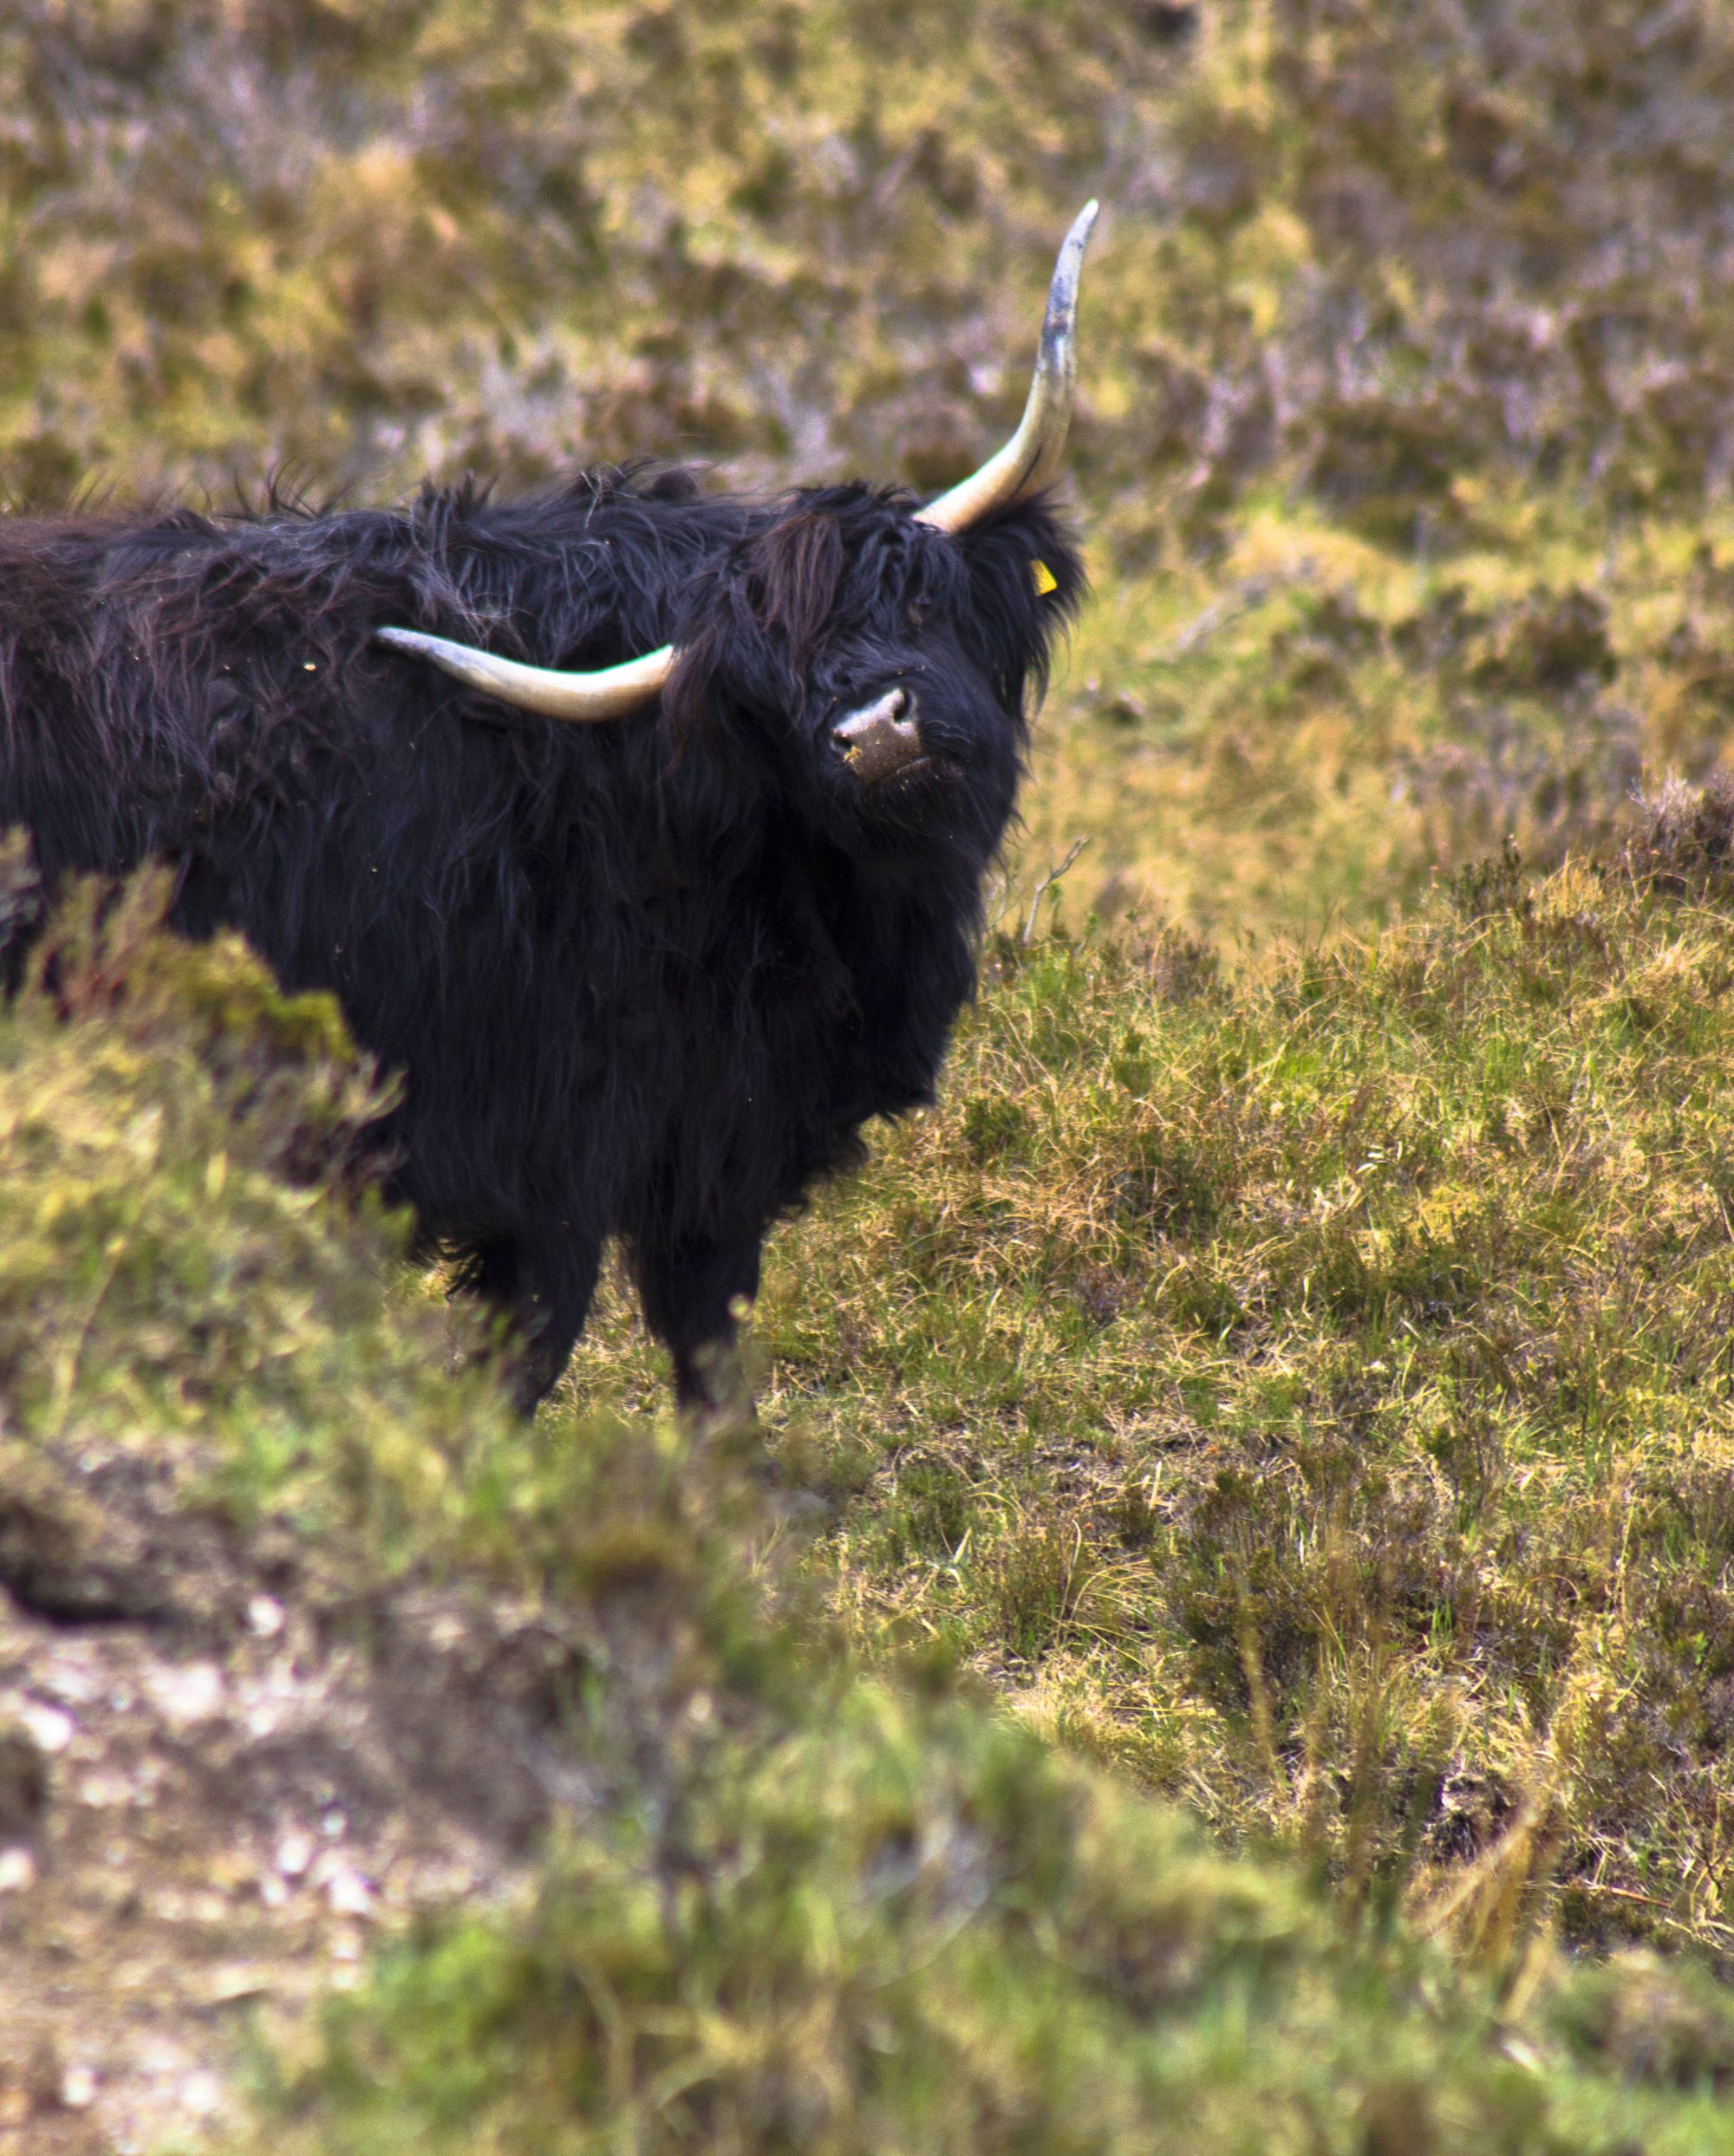 ...and a coo or two!